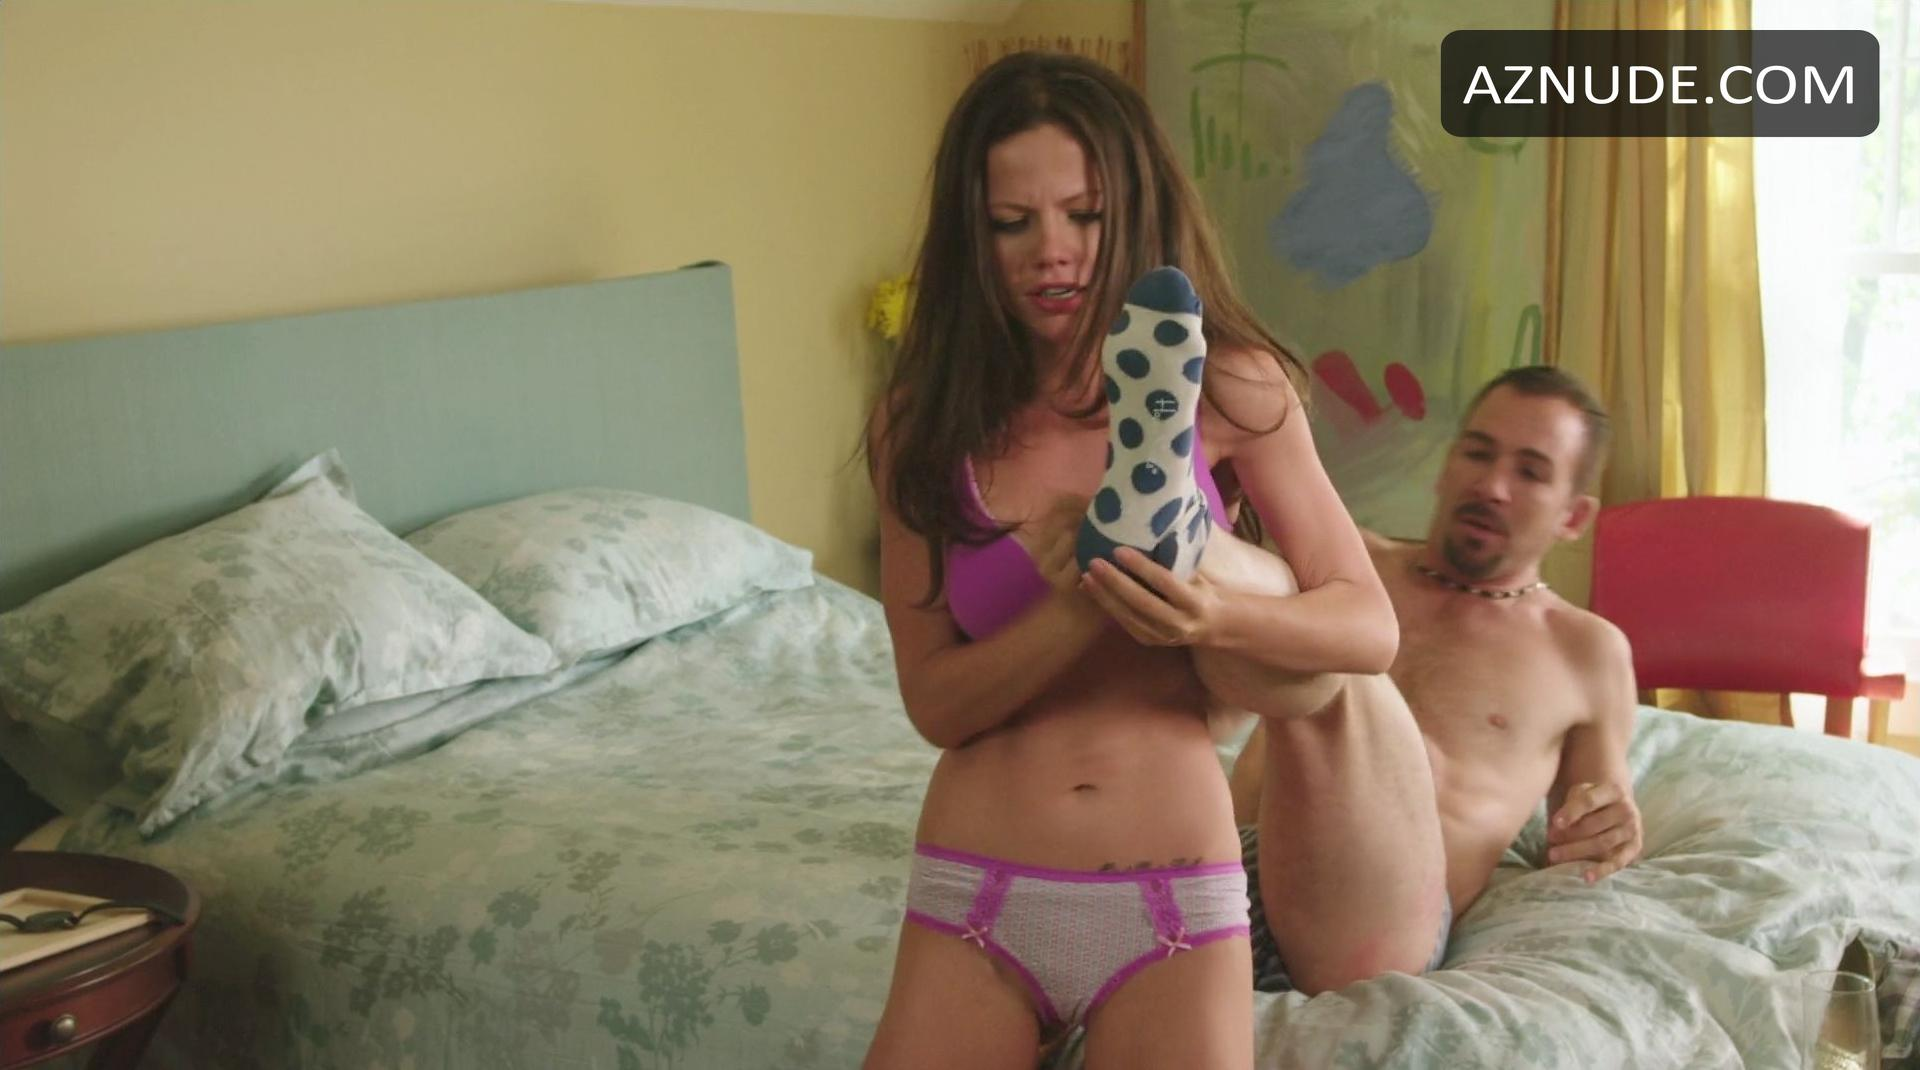 tammin-sursok-sex-gifs-sexy-white-girl-with-big-ass